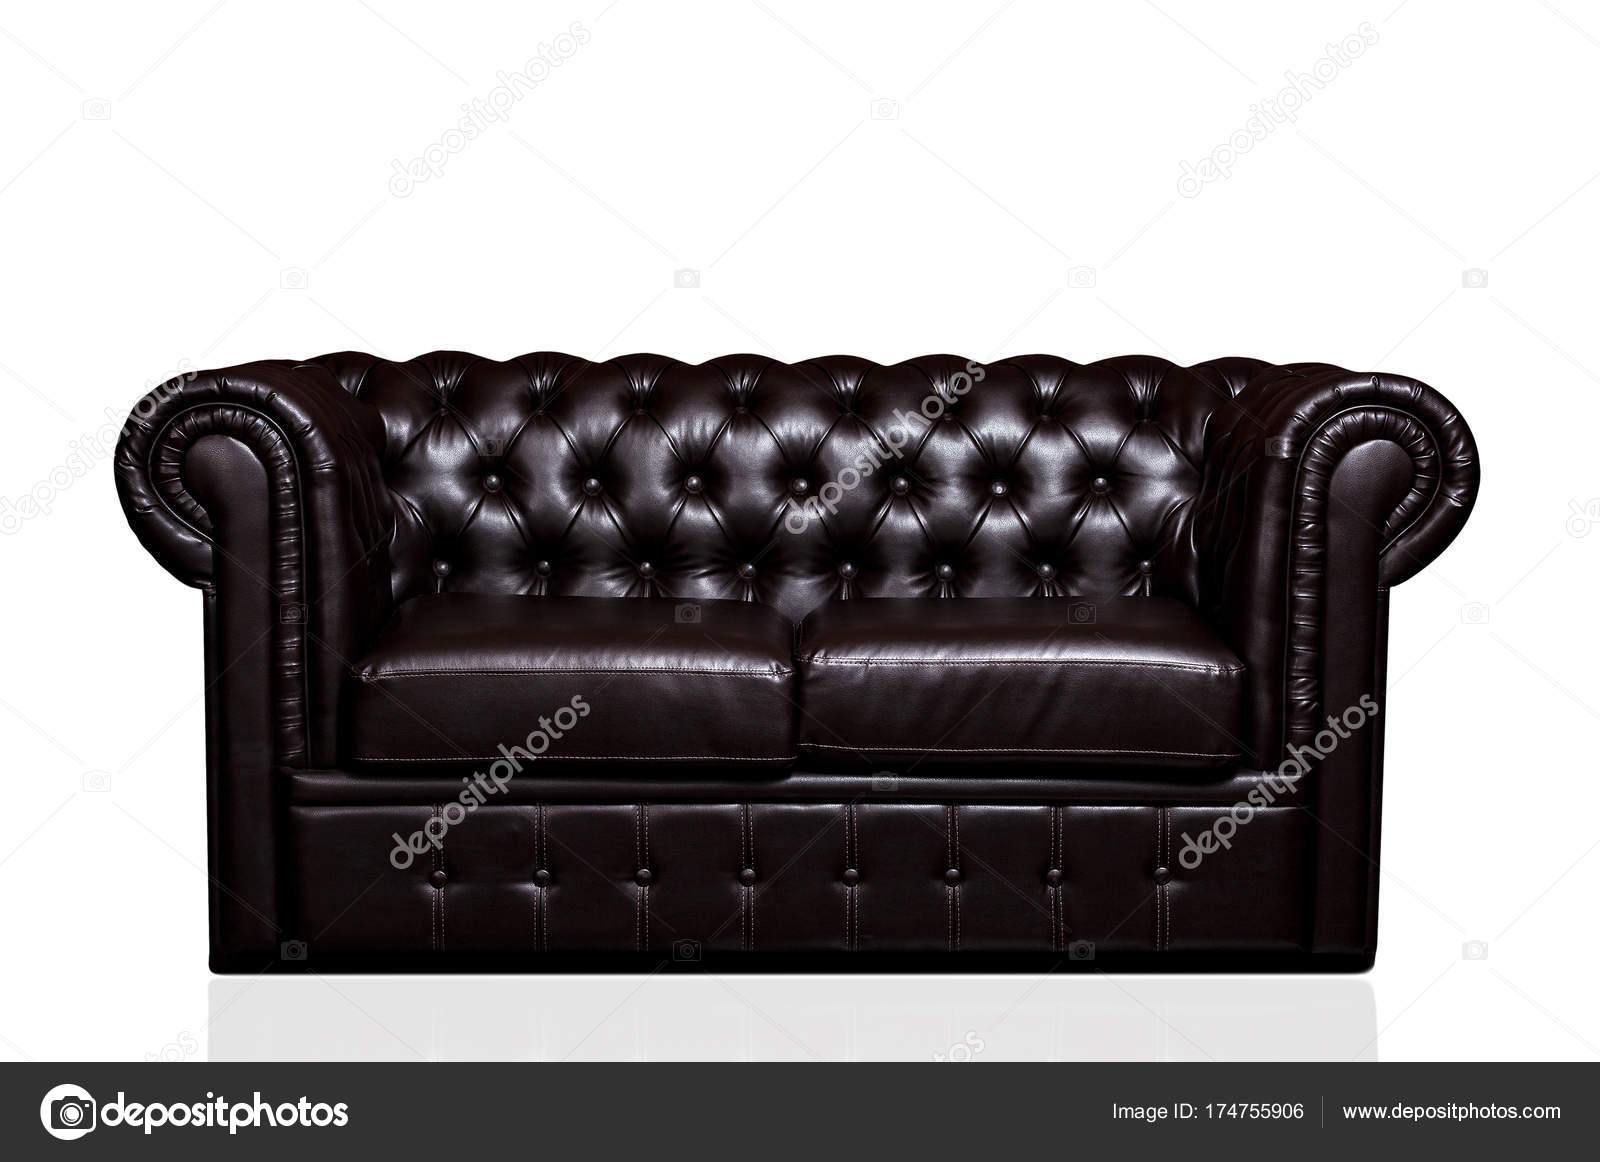 Vintage old dark brown leather sofa isolated on white ...